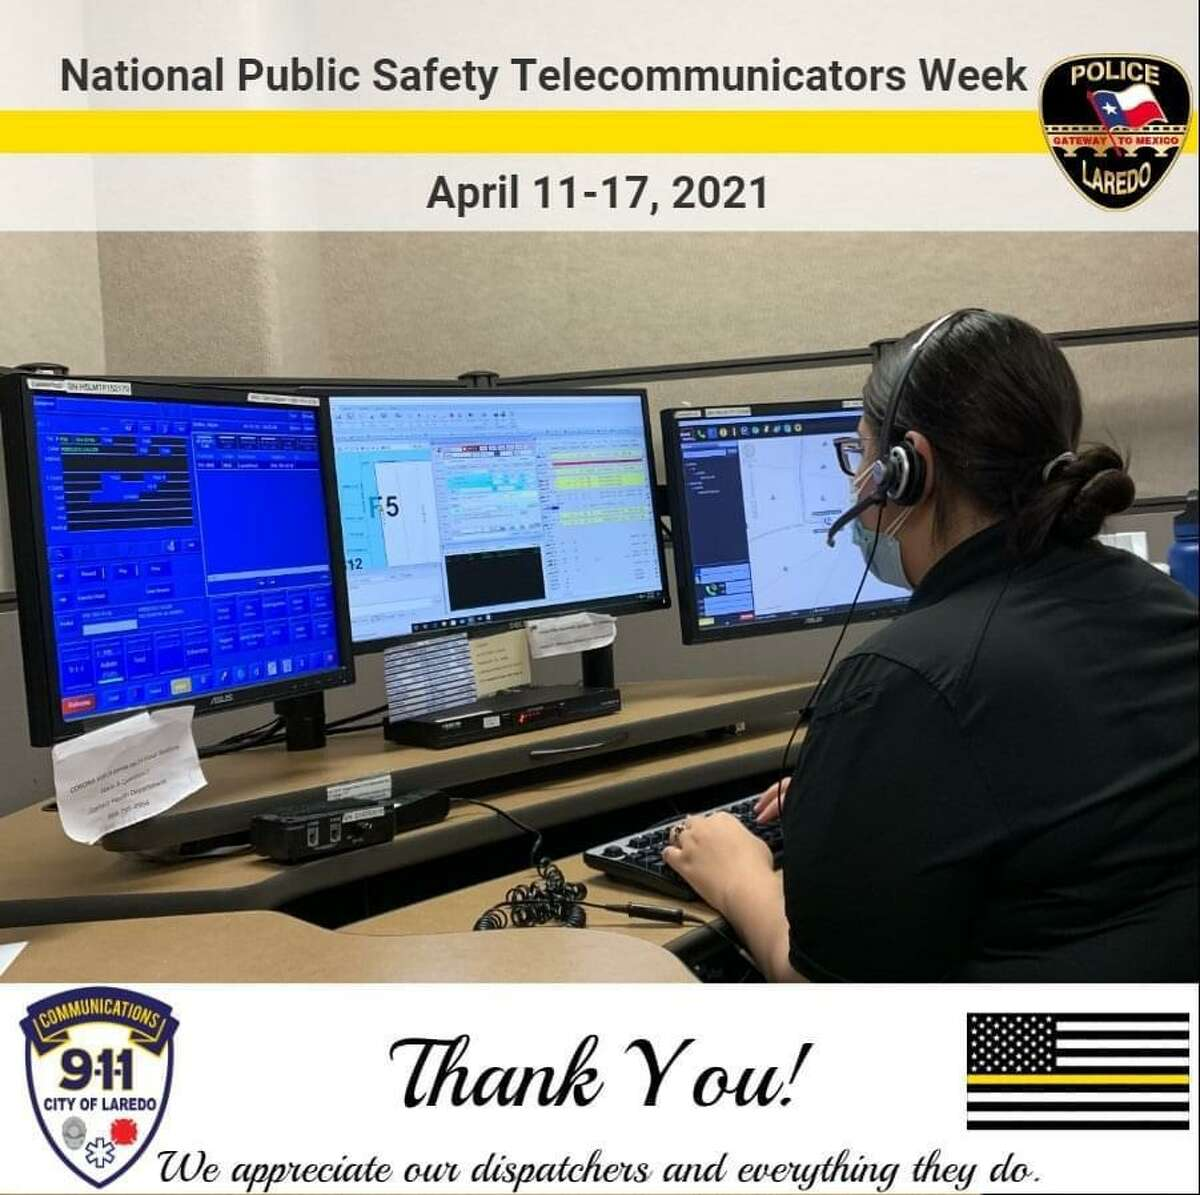 Laredo police expressed gratitude for their dispatchers as part of National Telecommunicators Week.